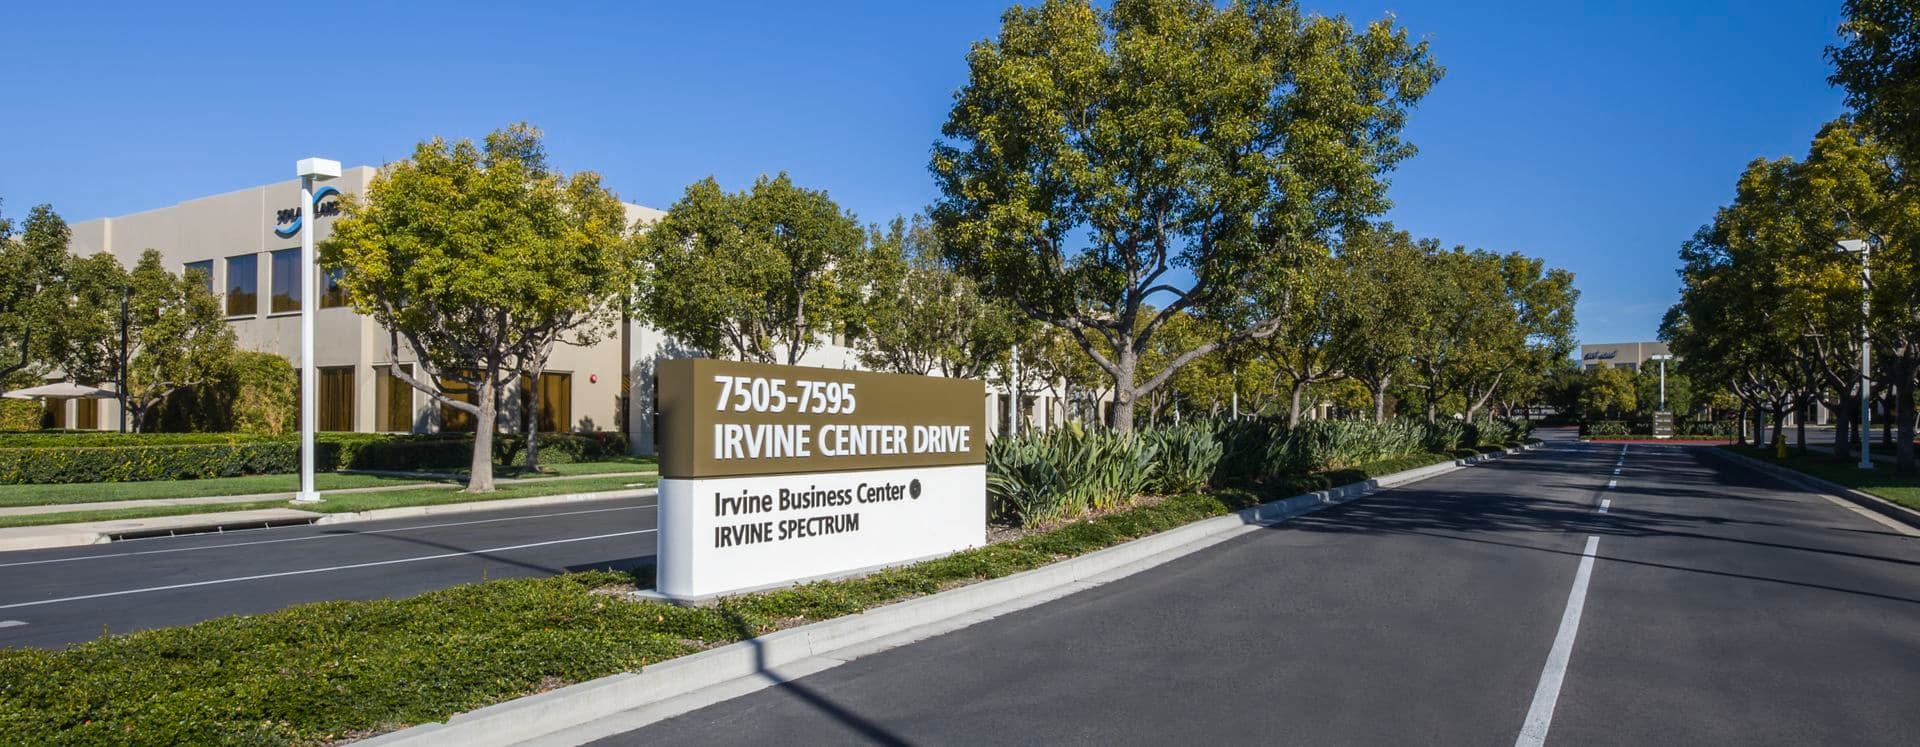 Irvine Business Center